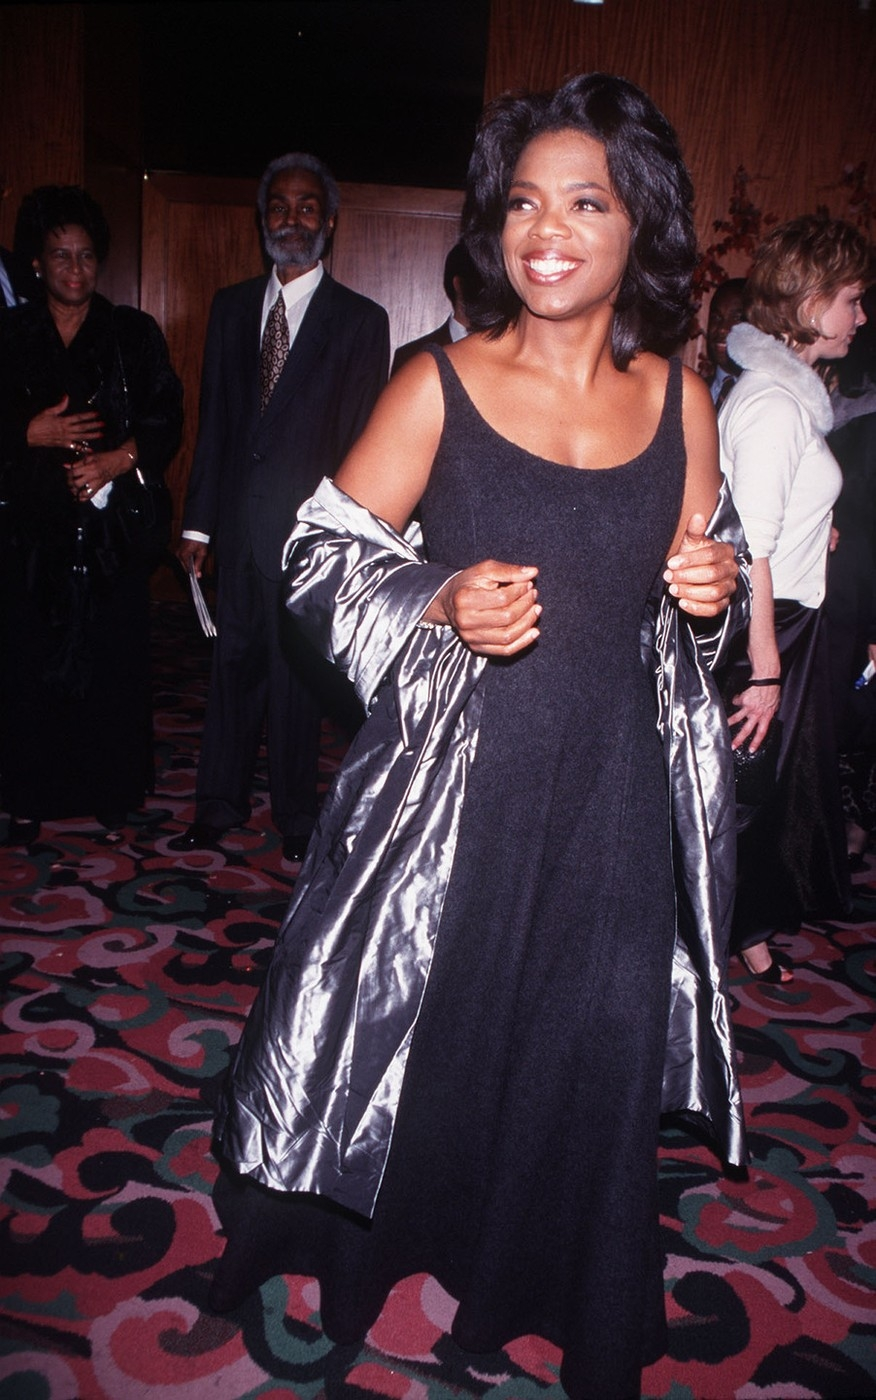 Oprah Winfrey Attending Movie Premiere